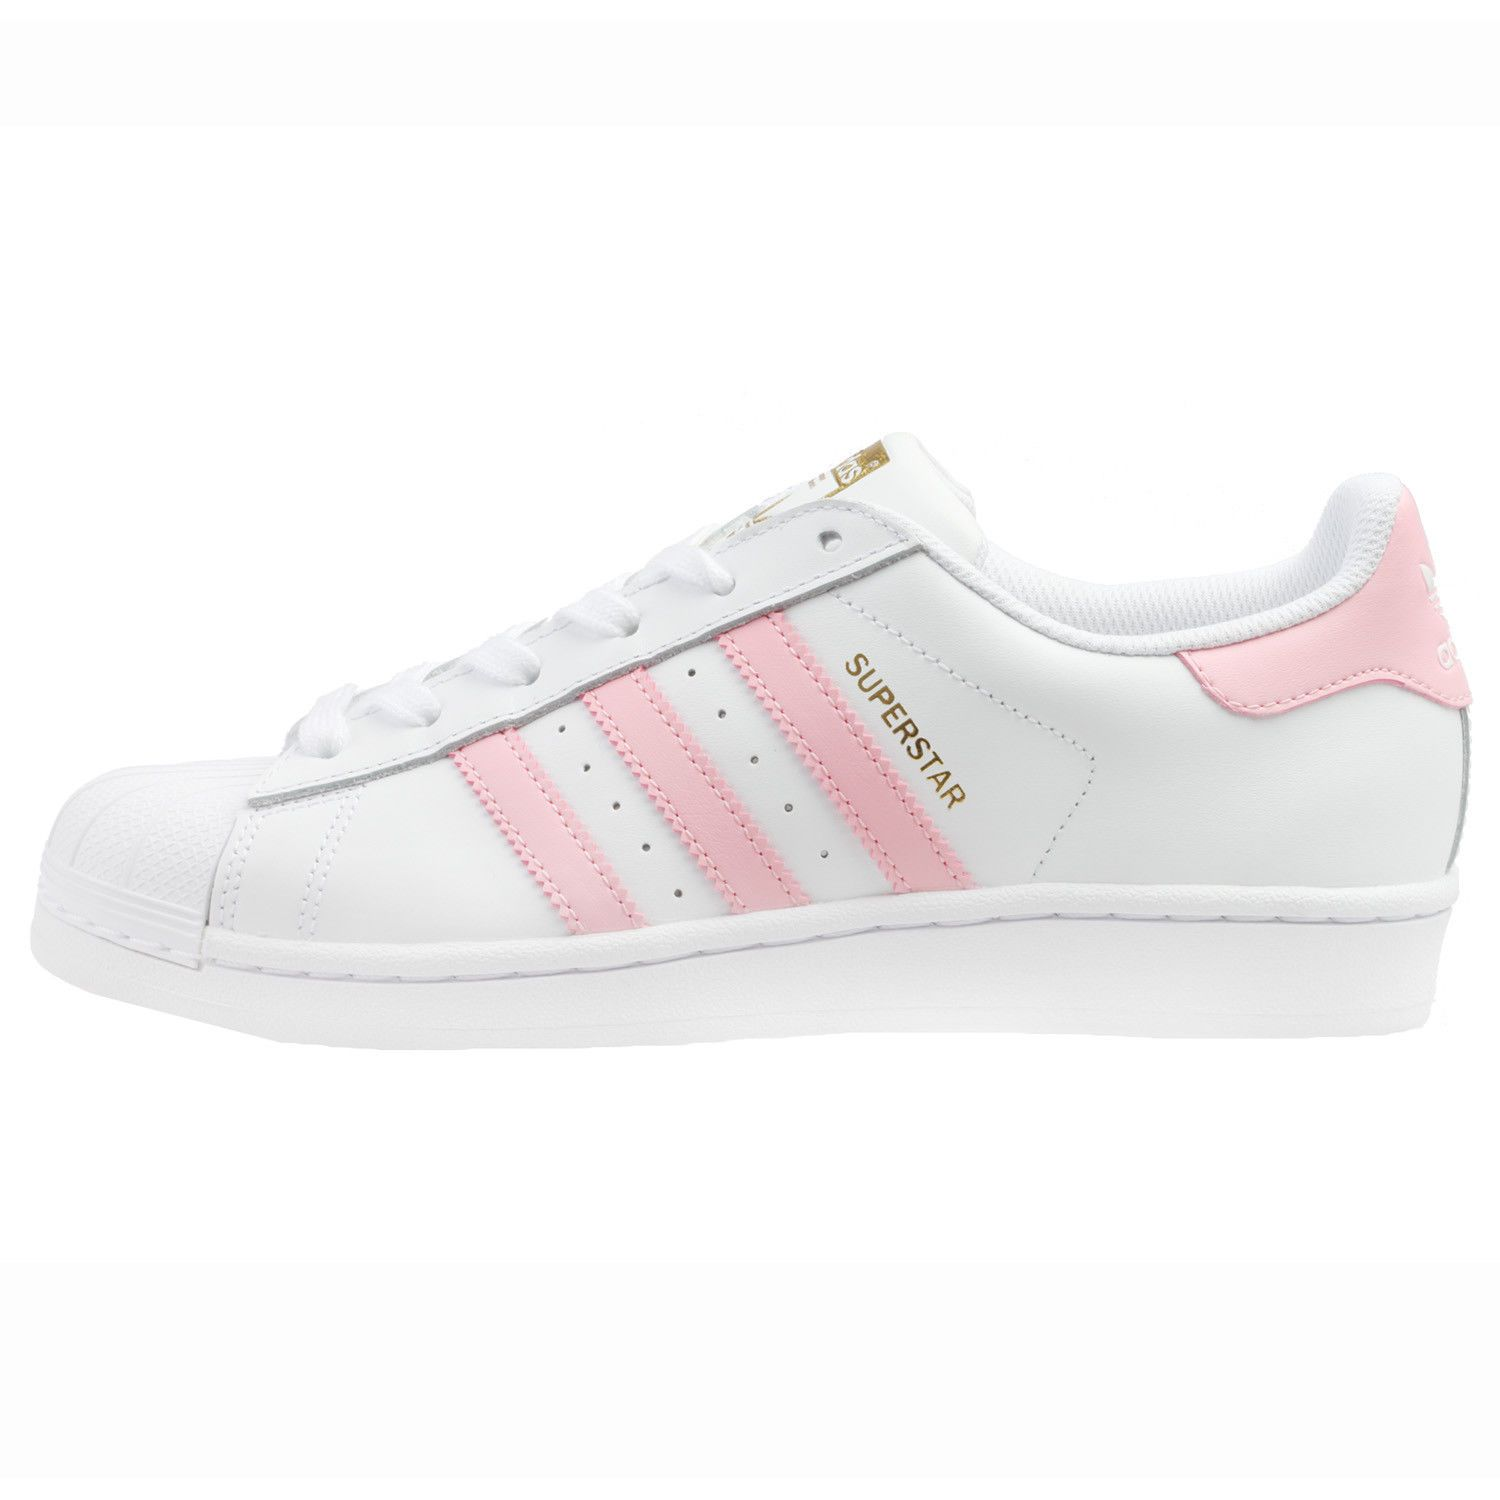 Adidas Superstar Womens By3724 White Pink Gold Leather Shell Toe ...